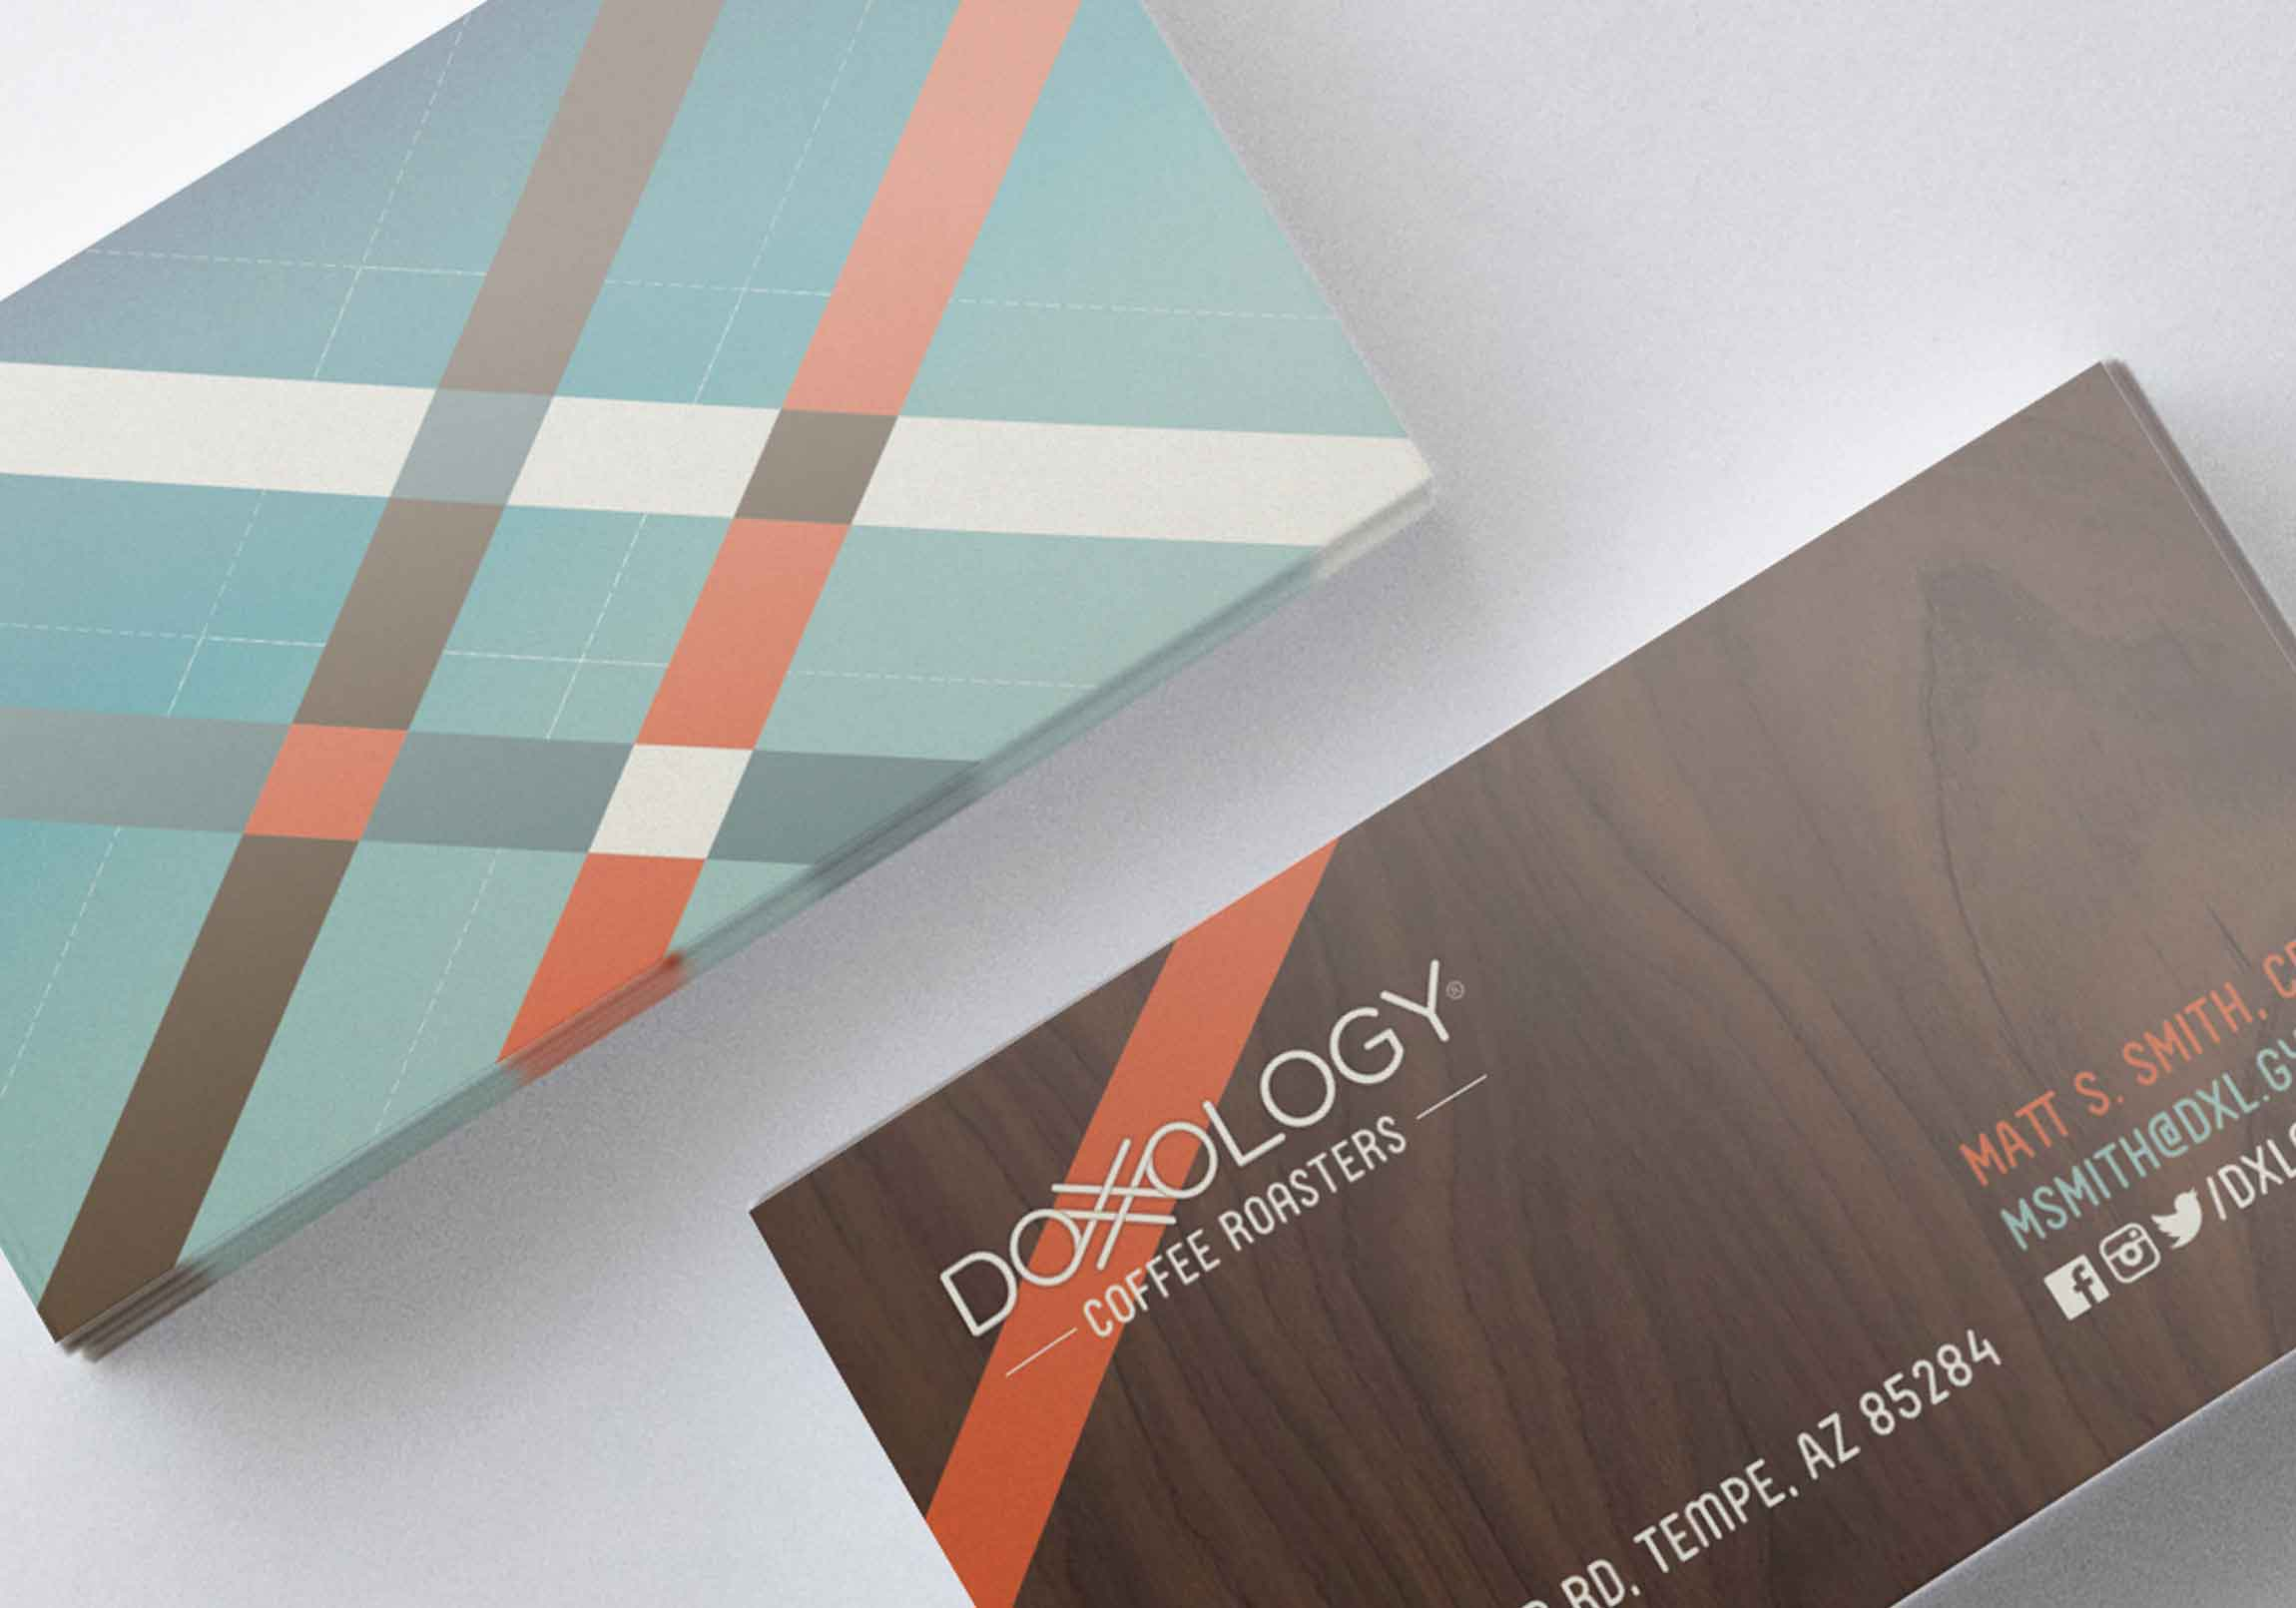 DXLGY coffee roasters Business Cards